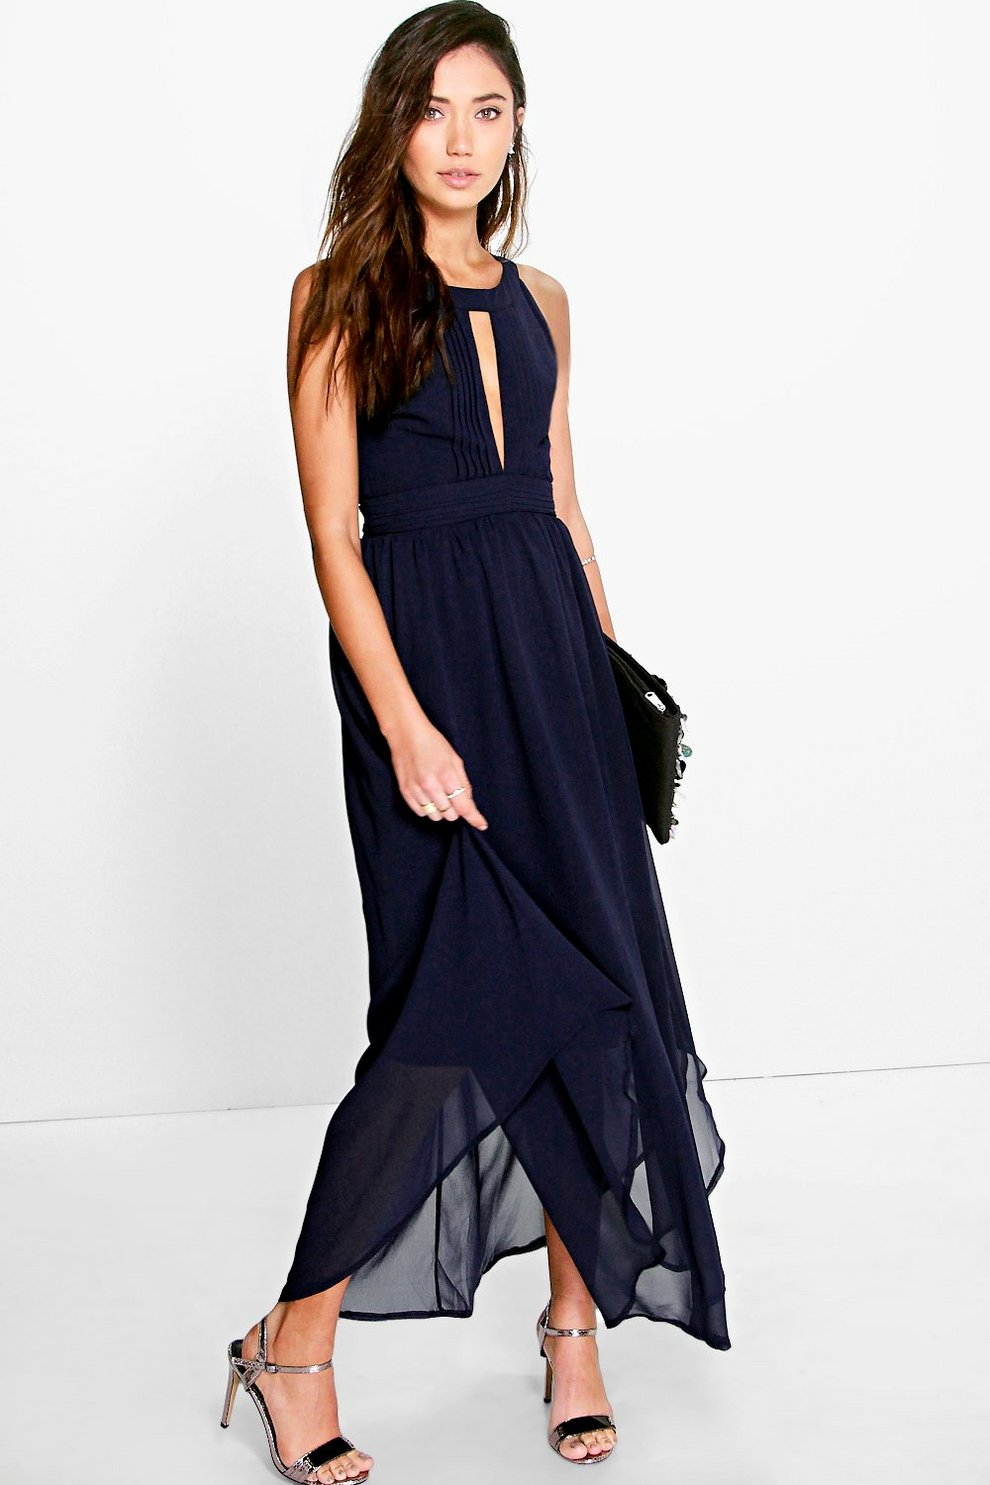 Buy How to maxi wear pleated chiffon skirt picture trends